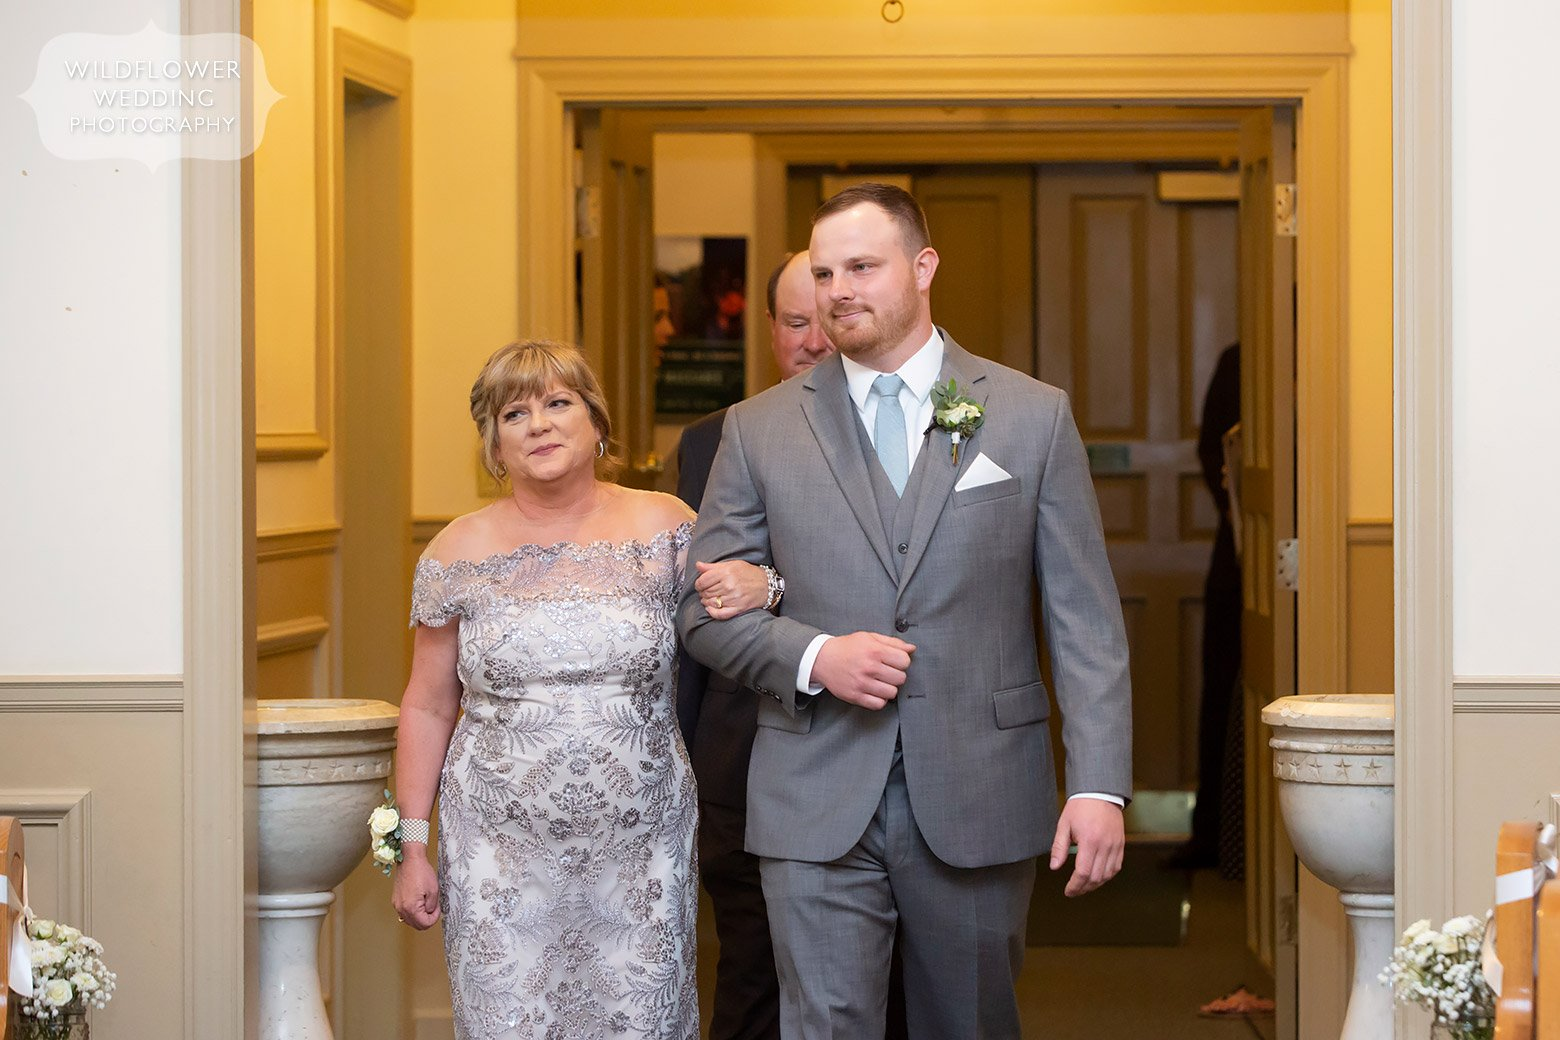 Groom walks down aisle with parents in Boonville, MO.